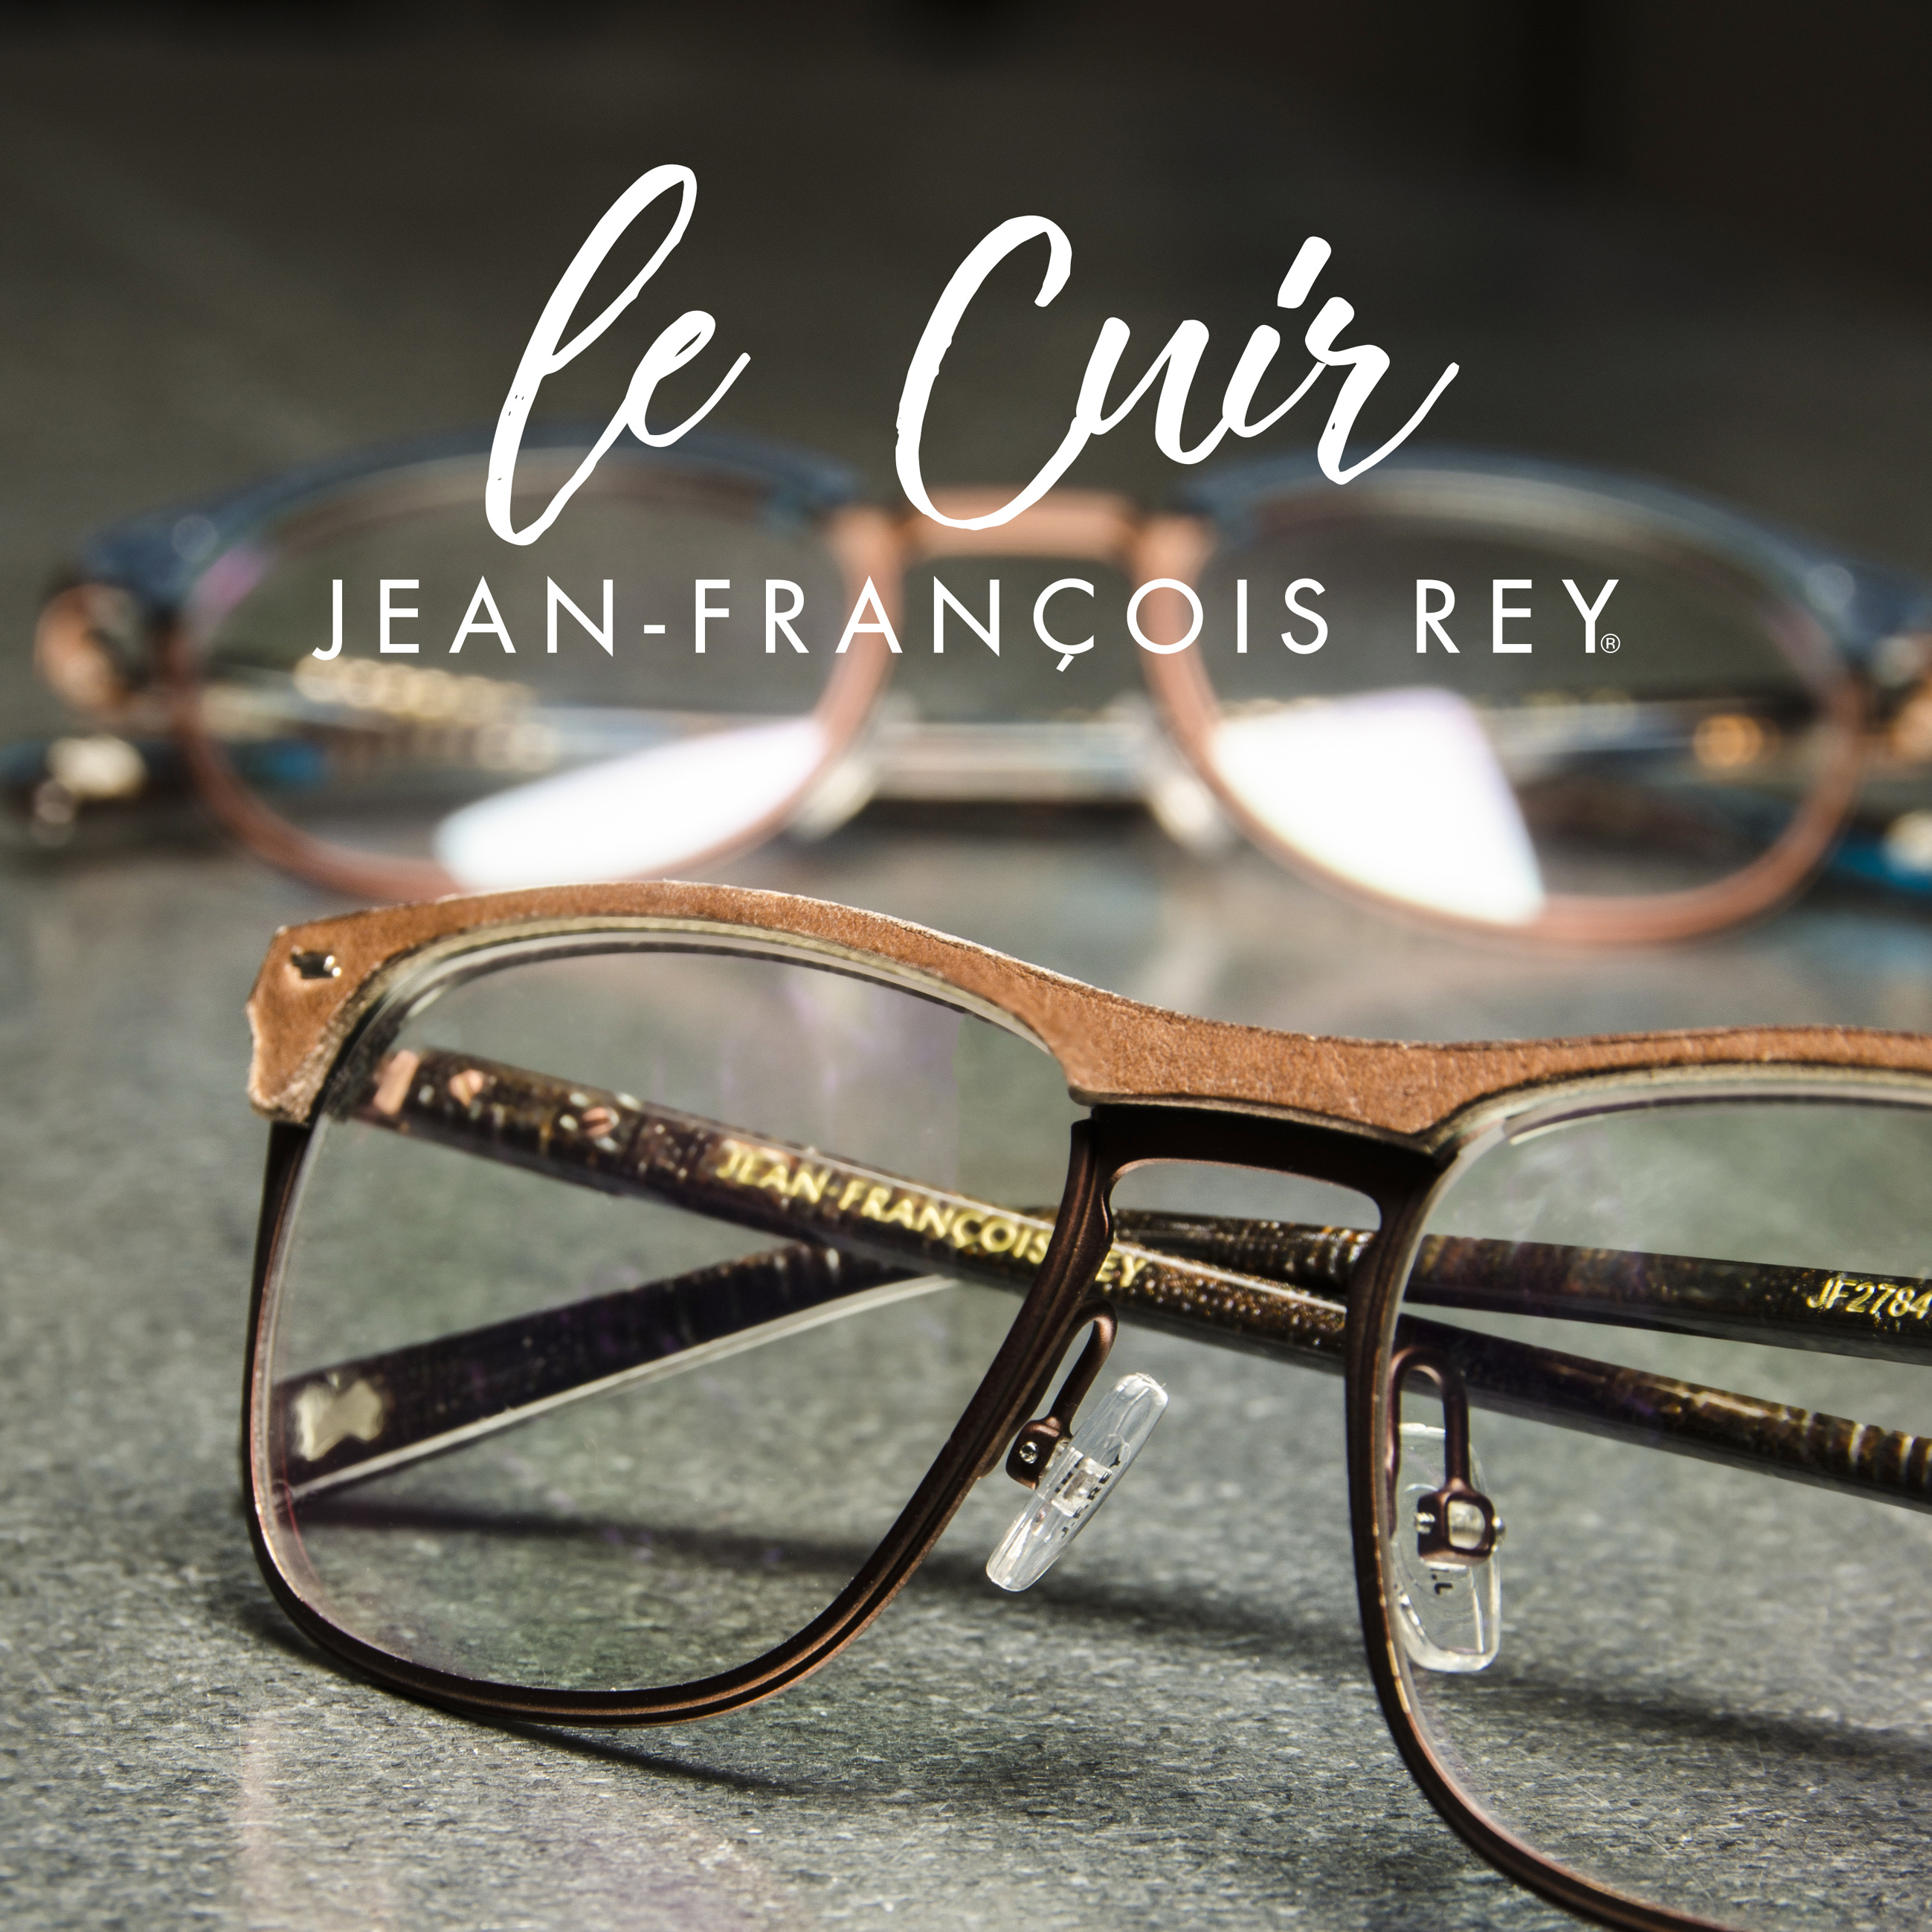 """JFREY Introduces New Leather Line """"Le Cuir"""""""